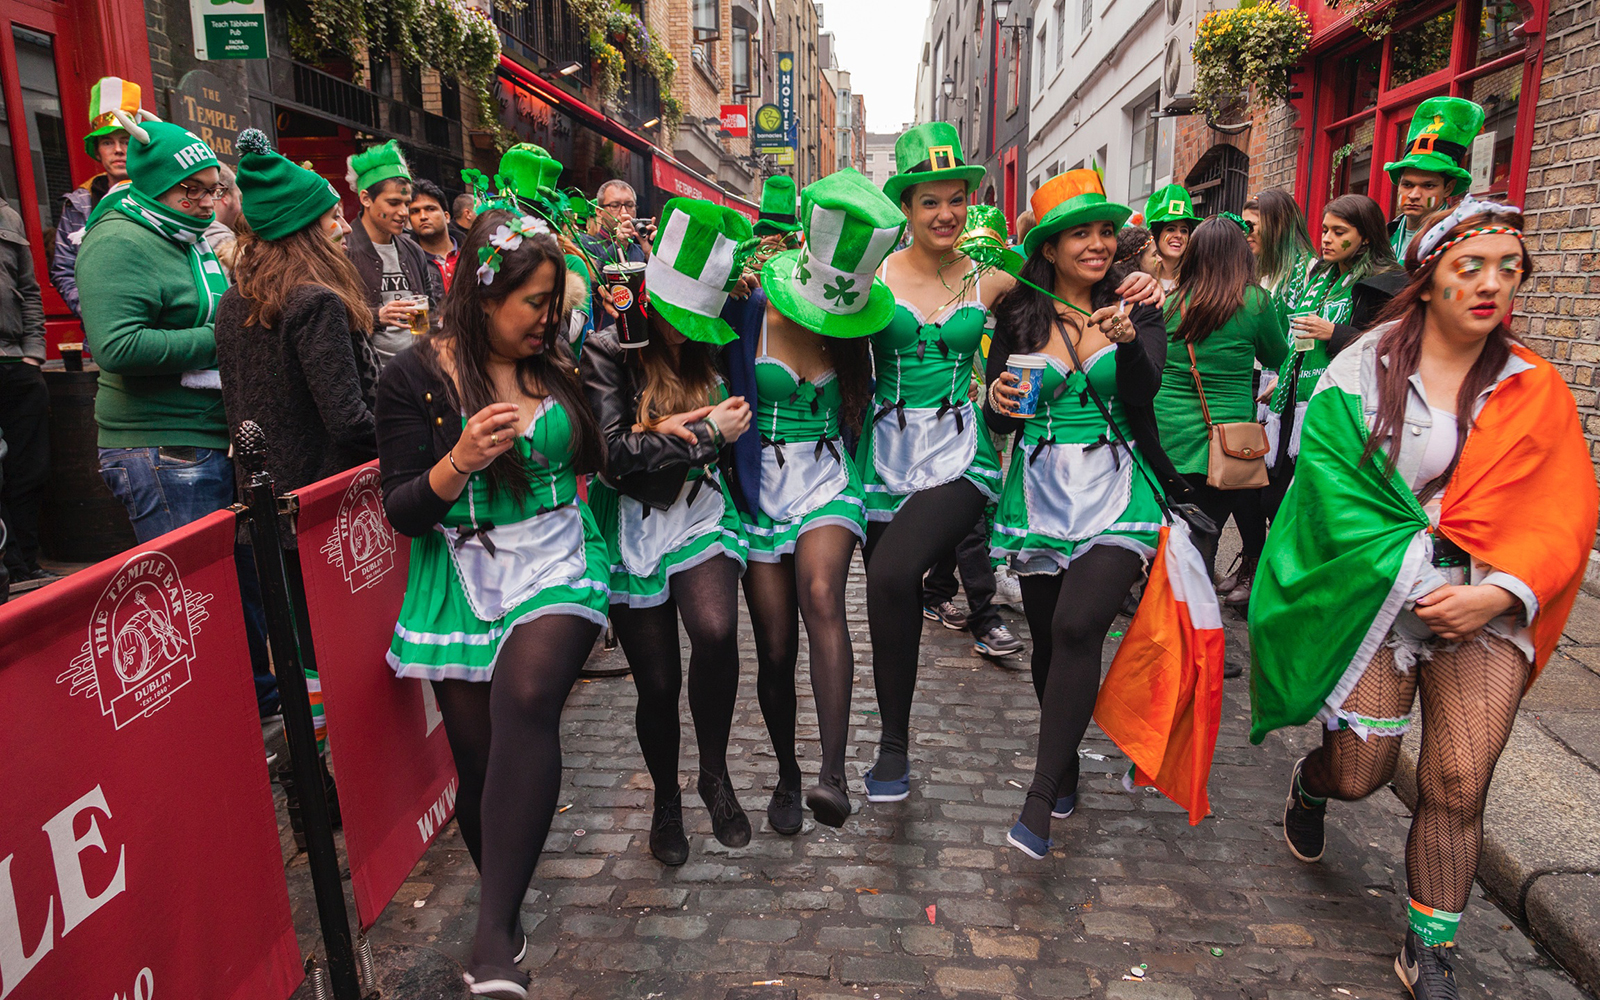 Five Brazilian girls dancing at Temple Bar after the parade in Dublin, Ireland.